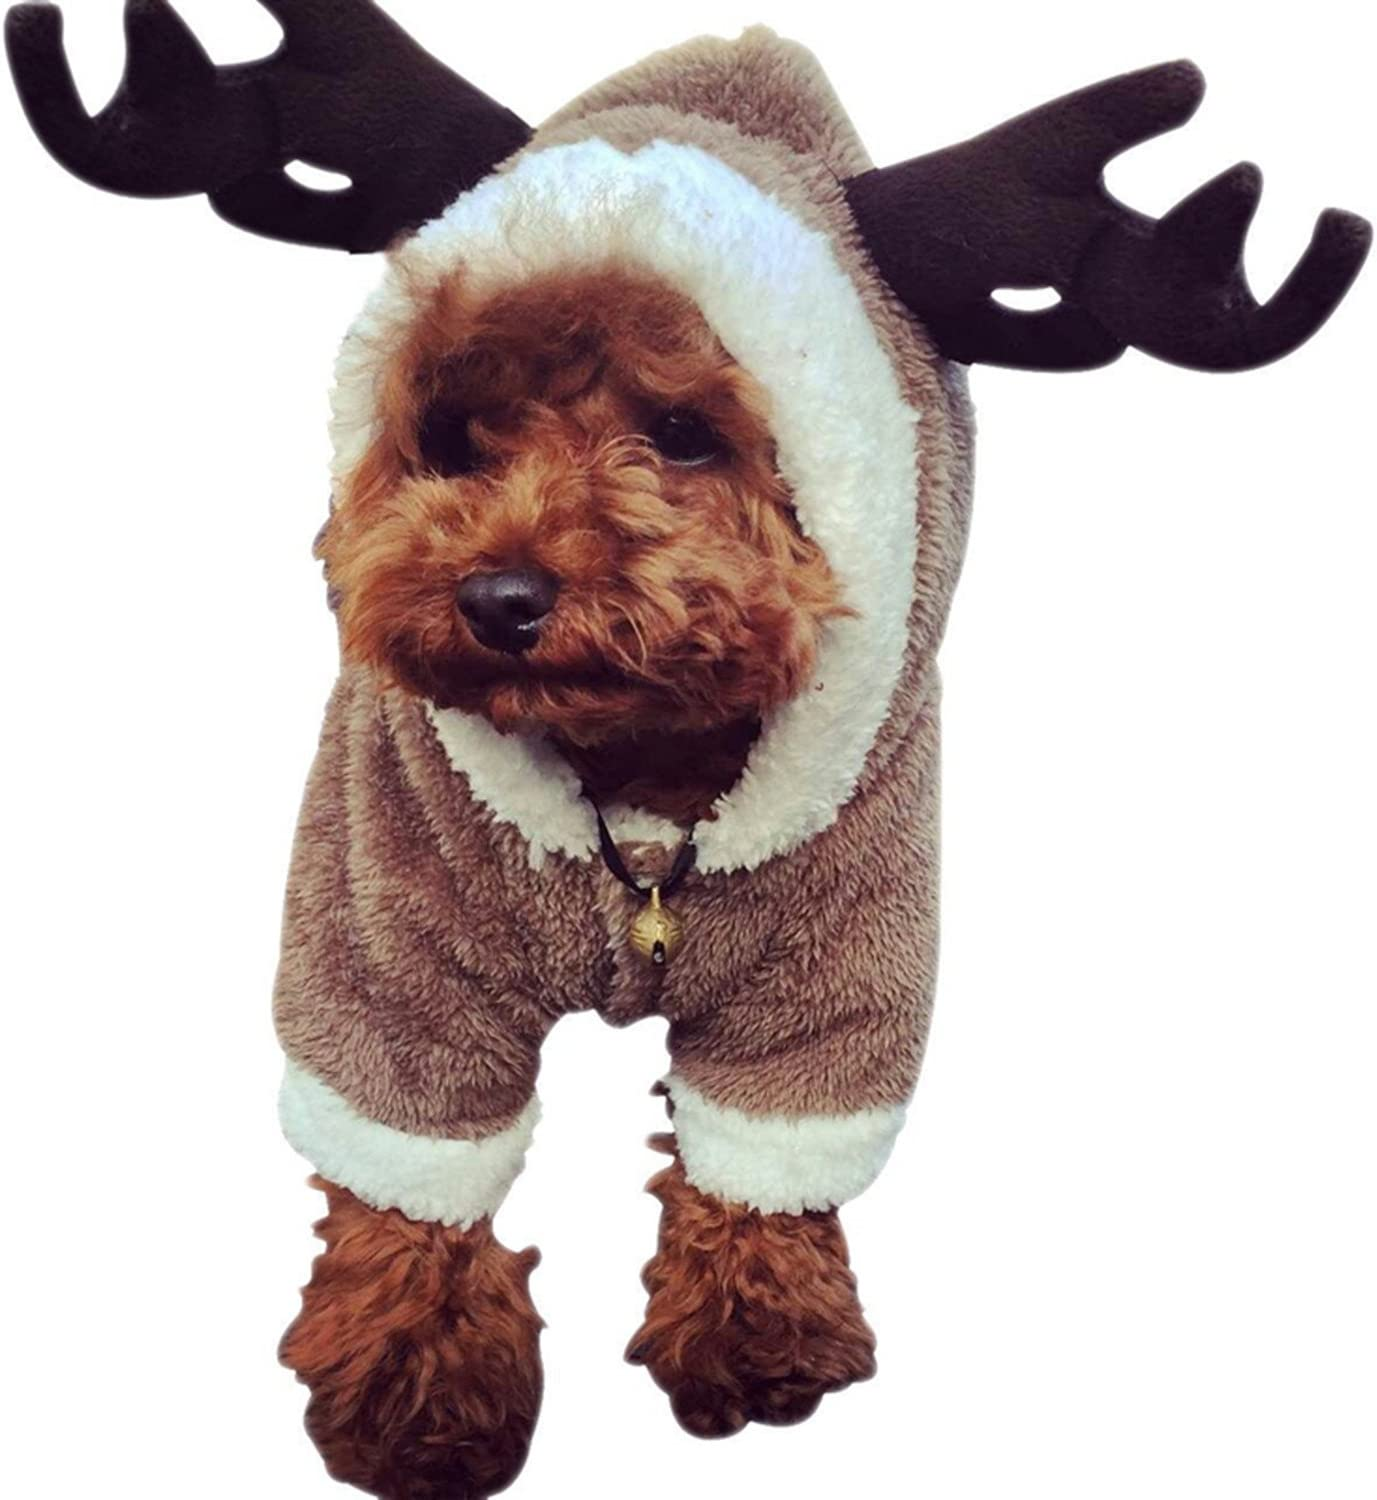 DWE Christmas Dog Outfits, Reindeer Deer Elk Design Dog Clothes Pet Costume  Puppy Outwear Coat For Teddy Chihuahua Yorkshire Terrier (XS)